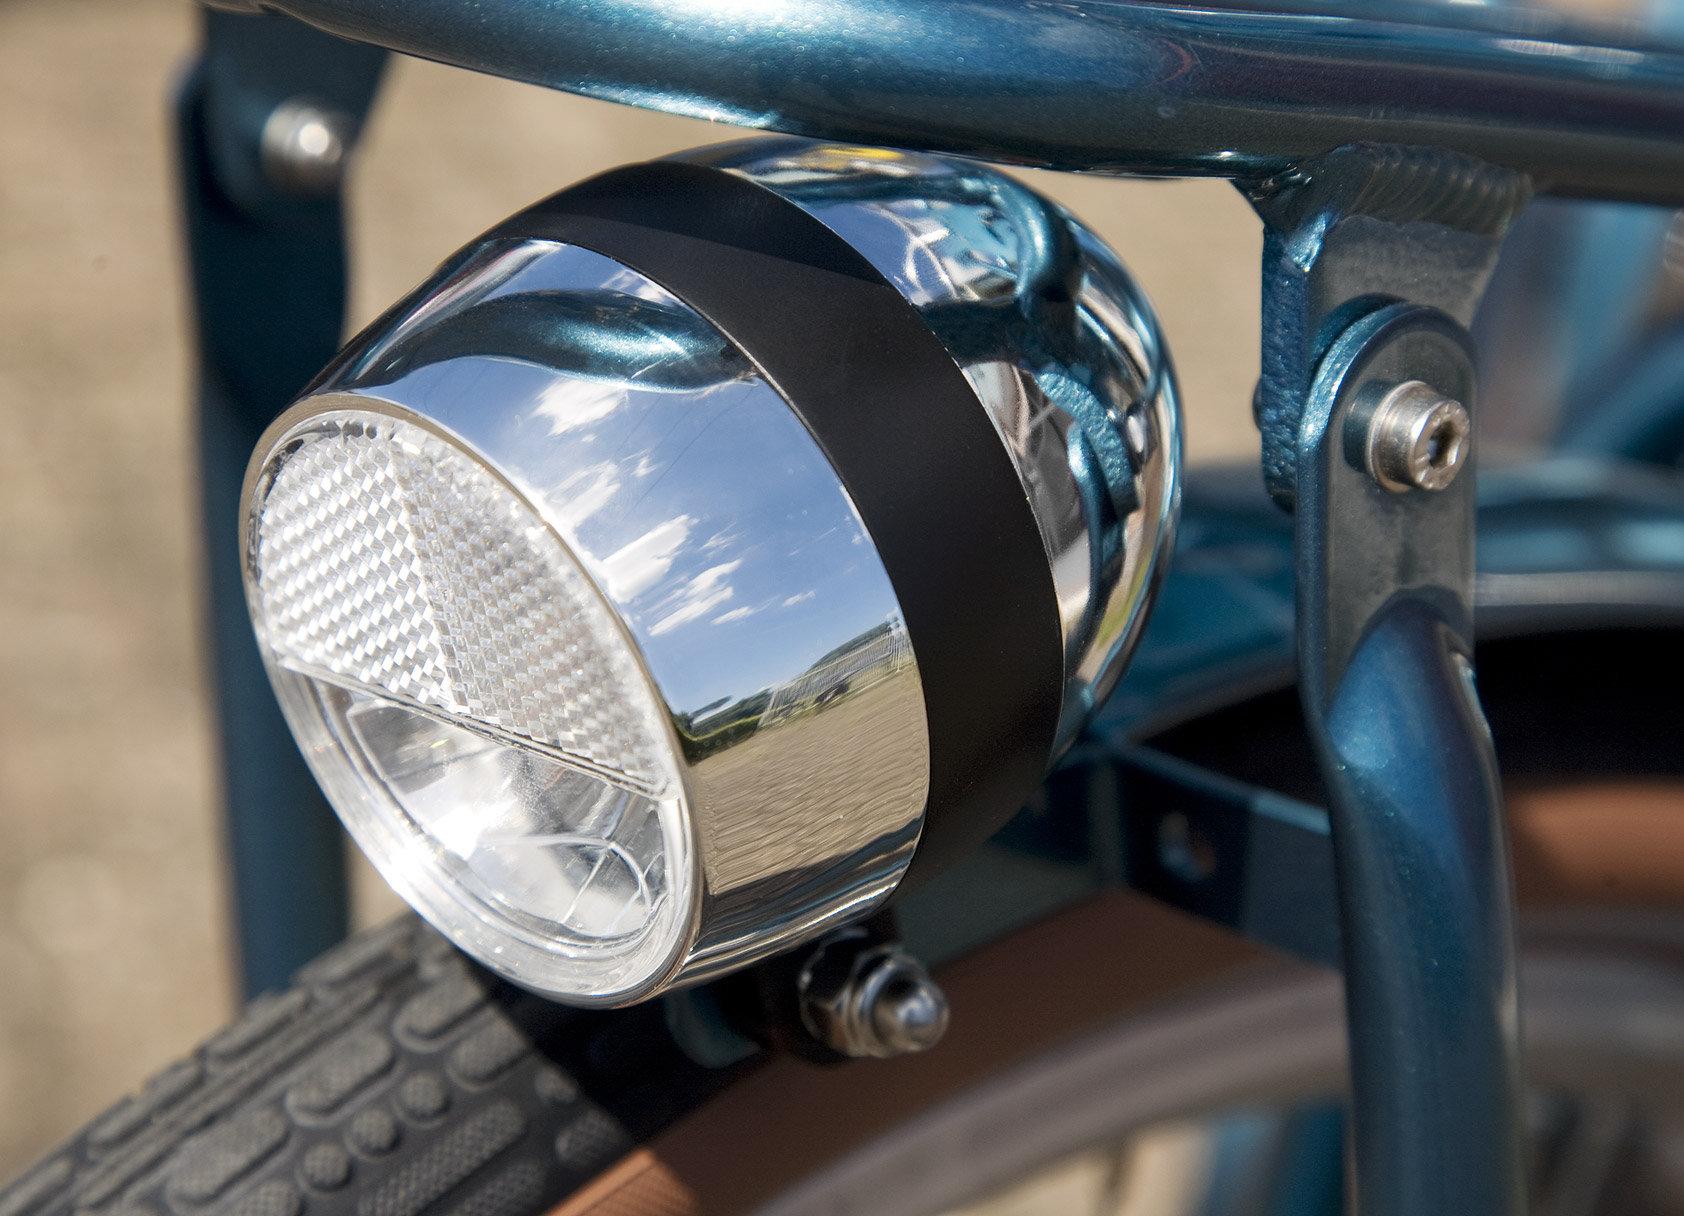 the amsterdam headlamp - Built in lamps, never take off, just switch on!